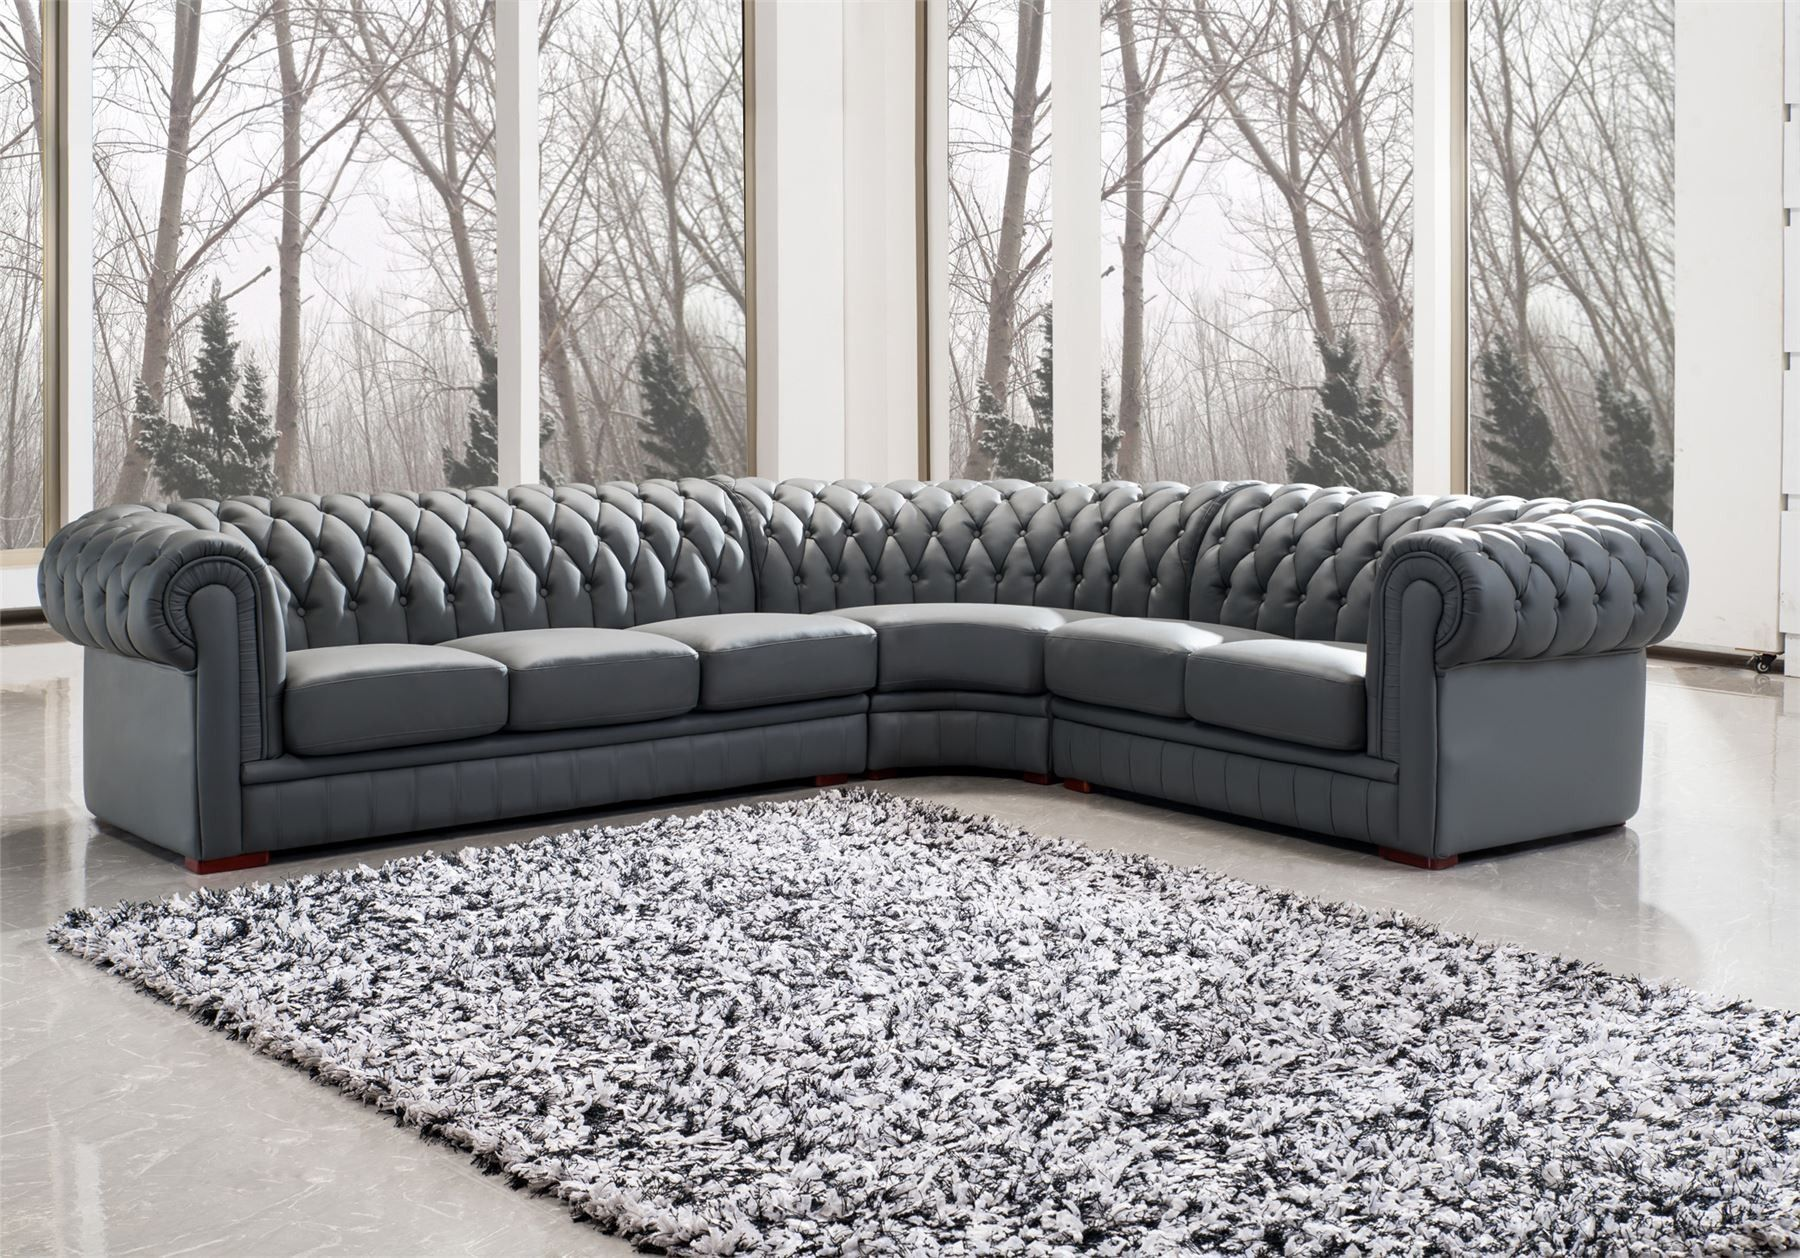 Chesterfield Ecksofa Weiss Appealing Grey Upholstered Sectional Leather Chesterfield Sofa In